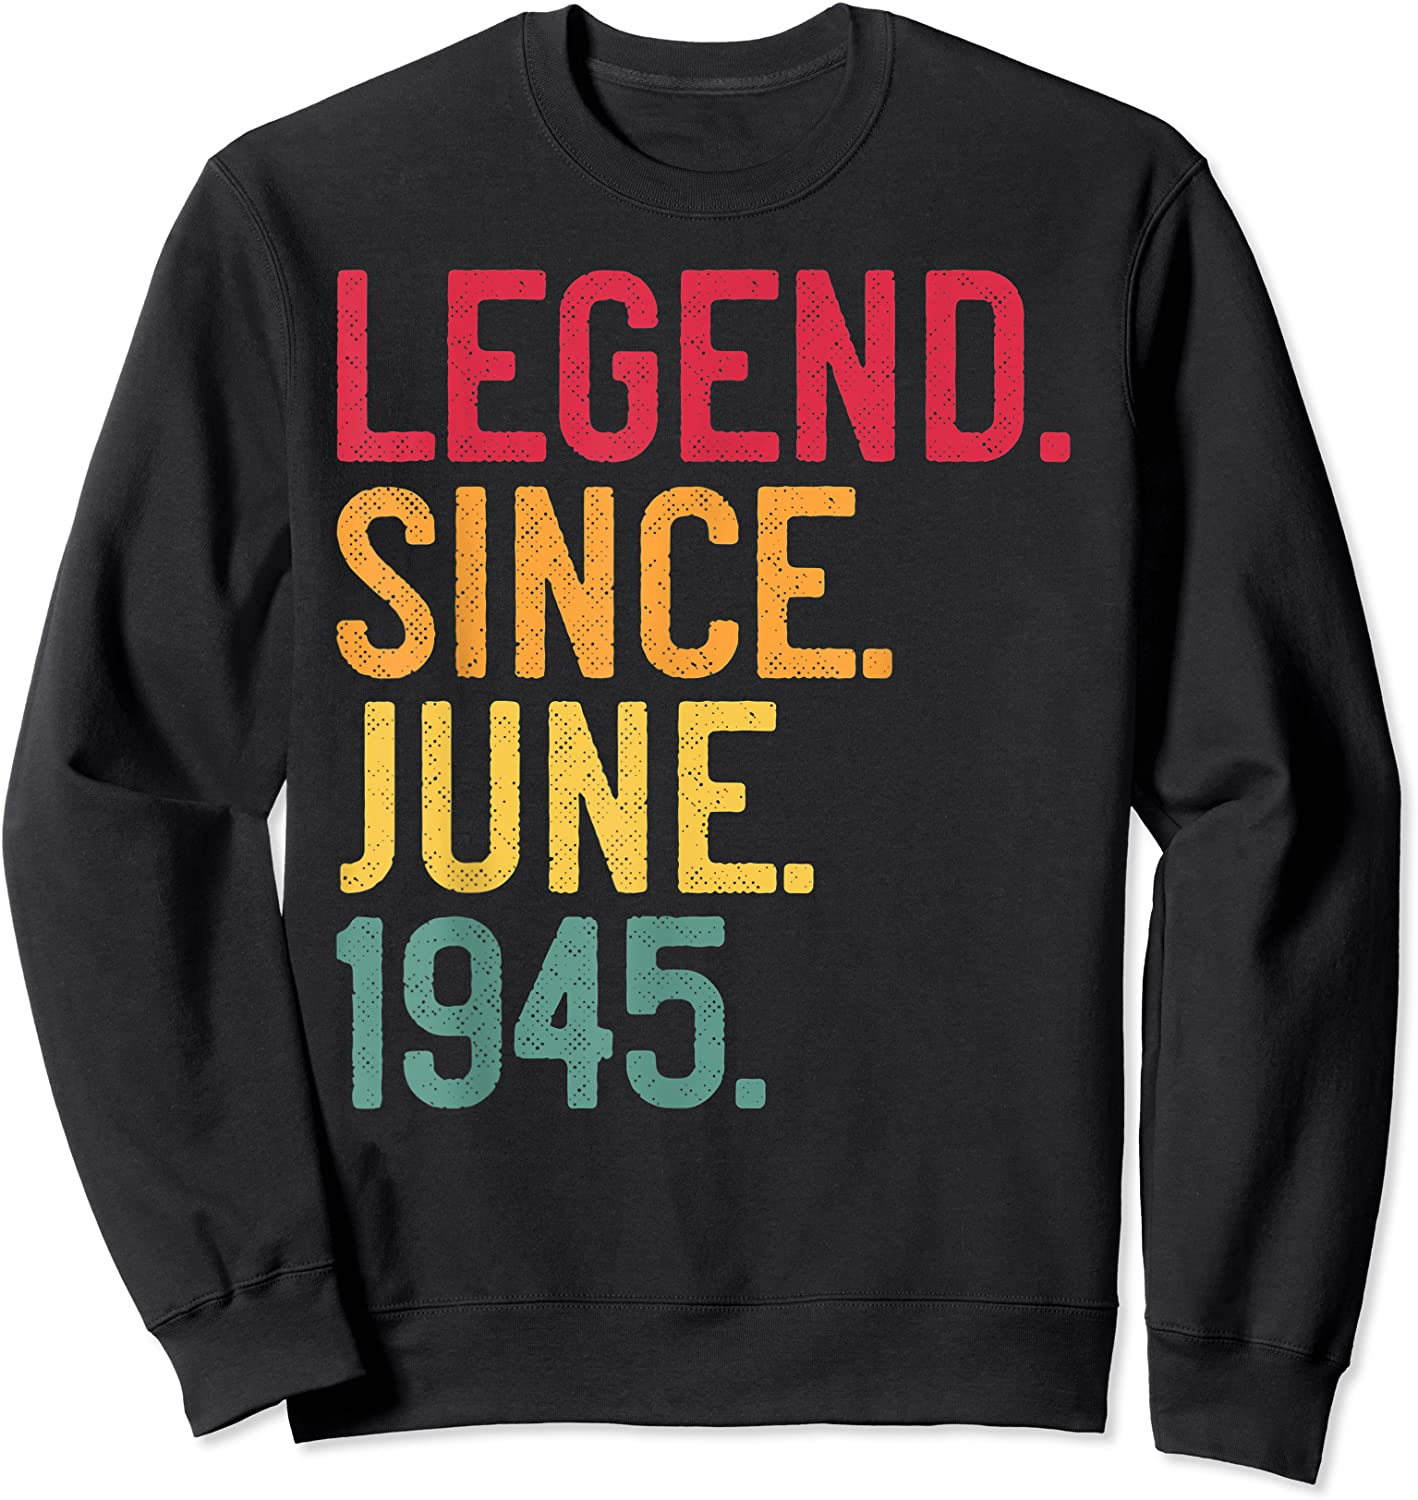 Legend Since June 1945 76th Birthday 76 Years Old Vintage T-shirt Crewneck Sweater